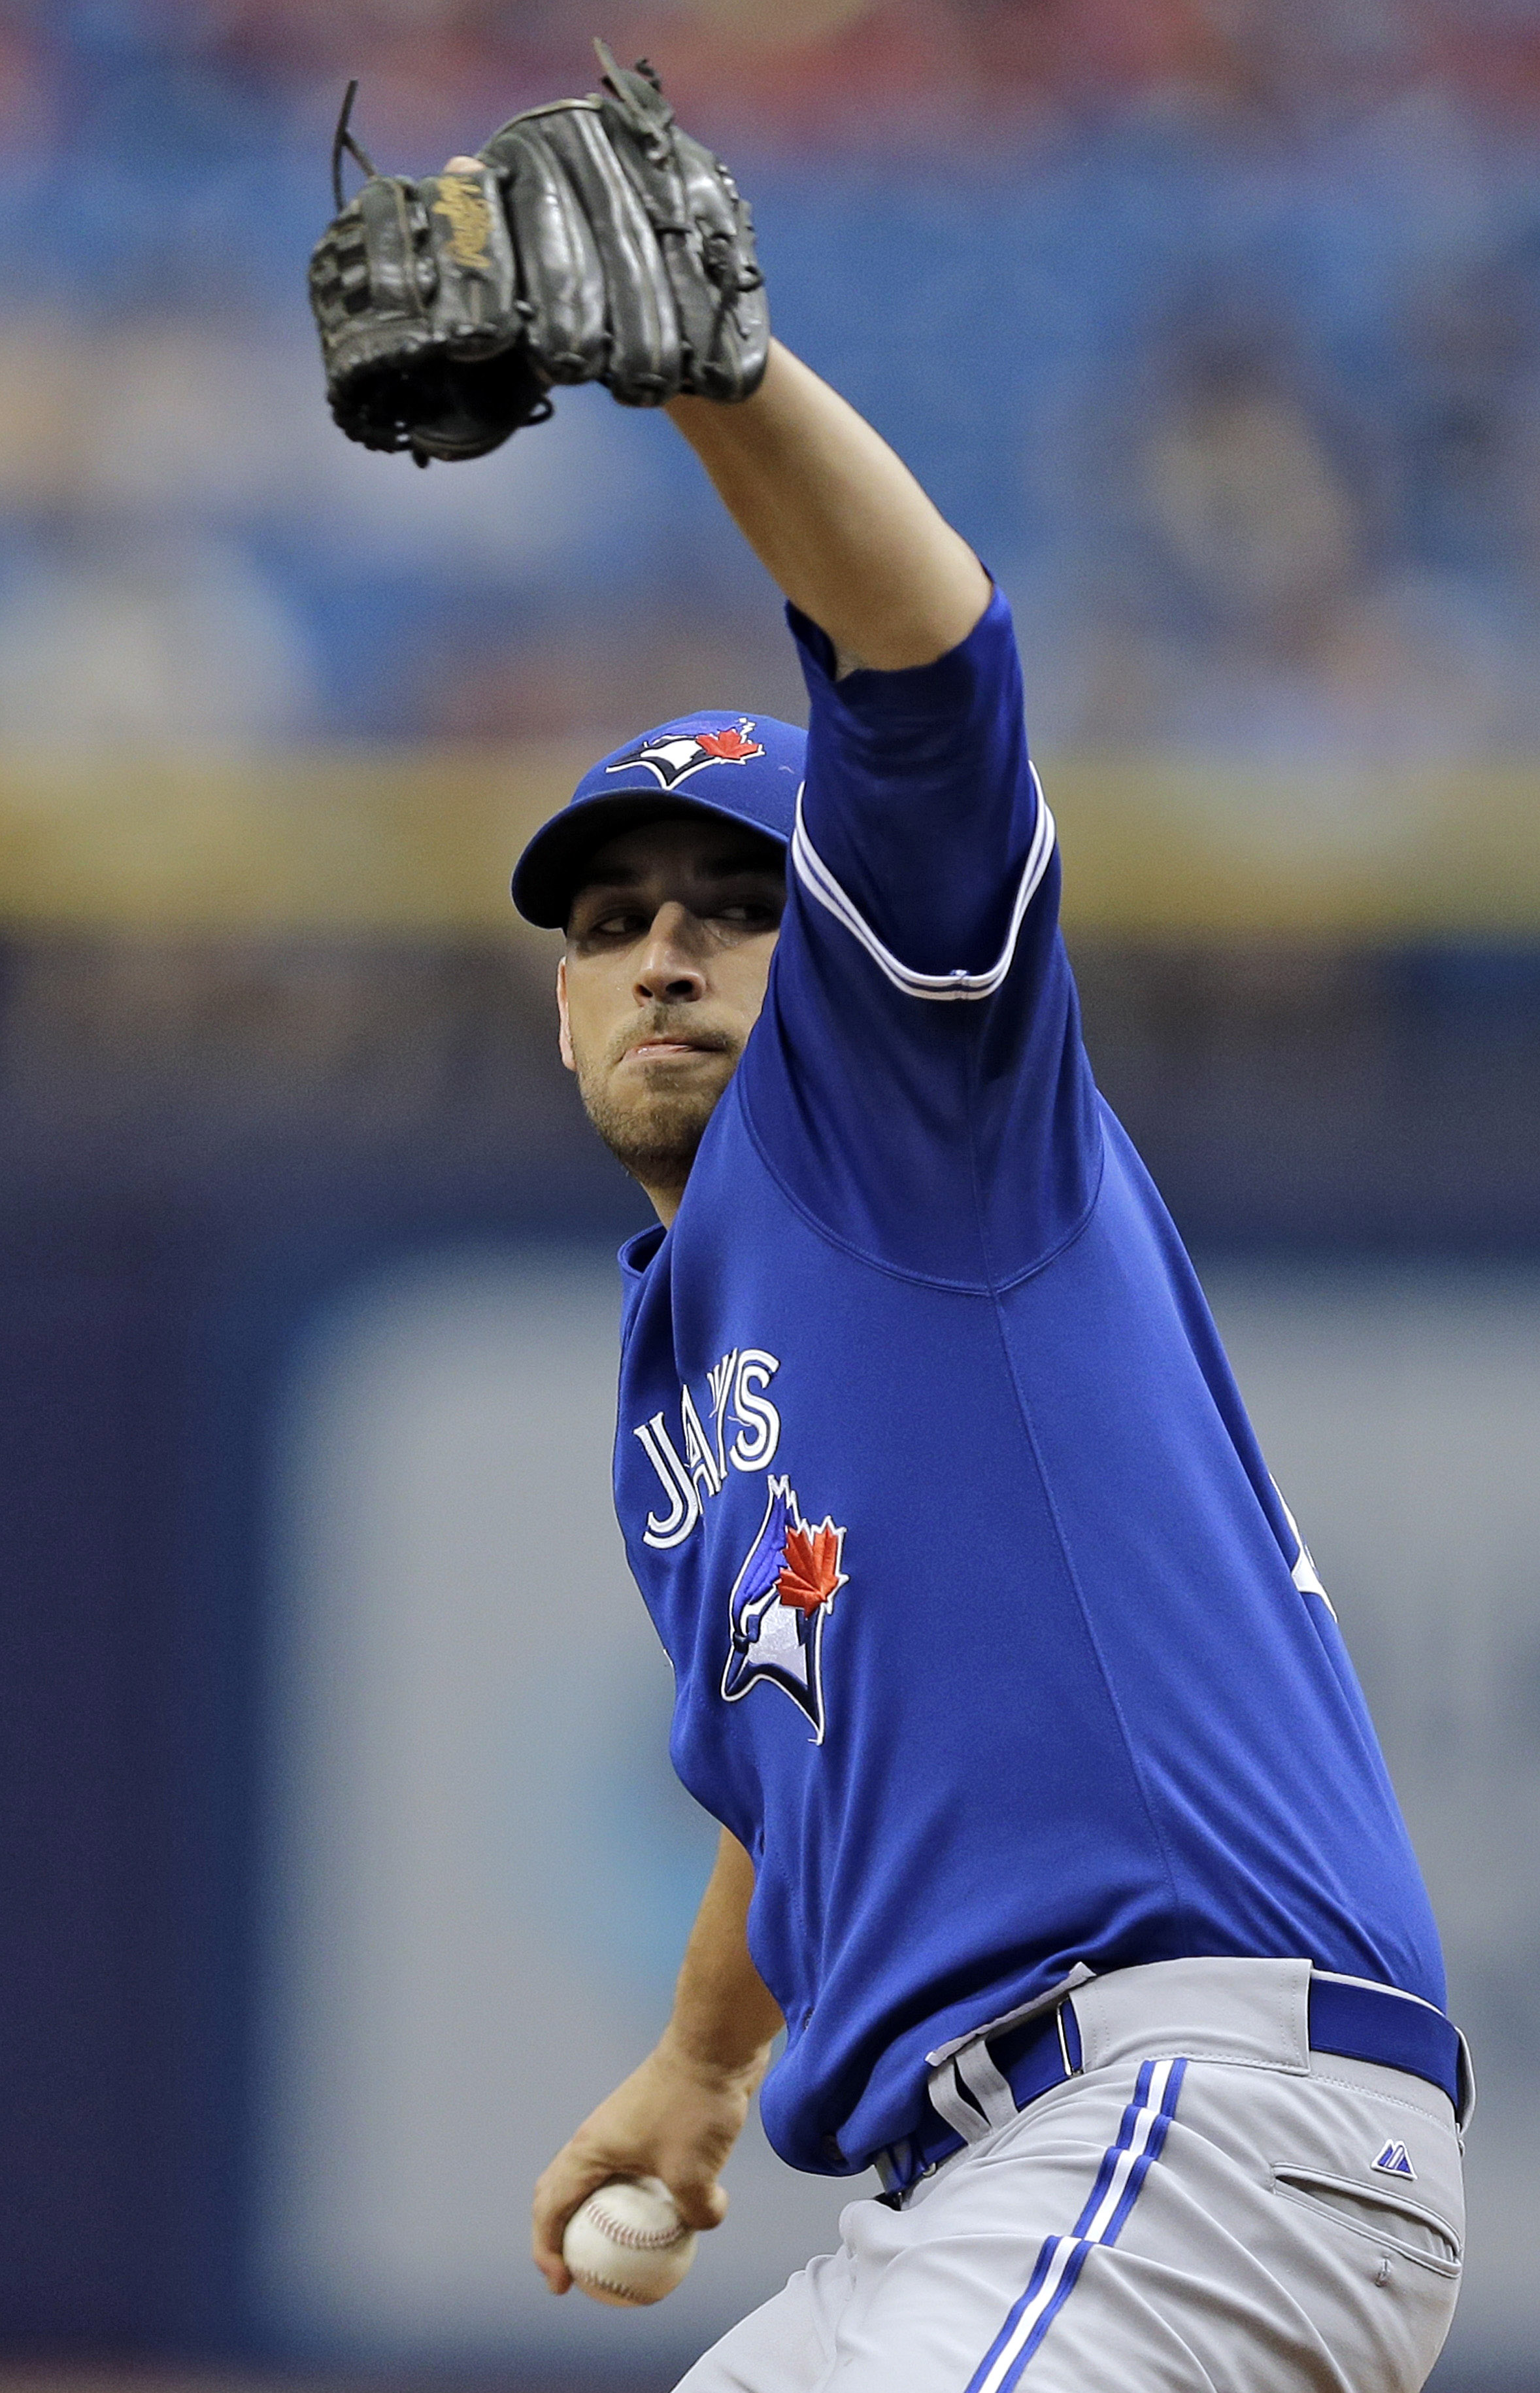 Toronto Blue Jays pitcher Marco Estrada winds up to throw against the Tampa Bay Rays during the first inning of a baseball game, Wednesday, June 24, 2015, in St. Petersburg, Fla.  (AP Photo/Chris O'Meara)